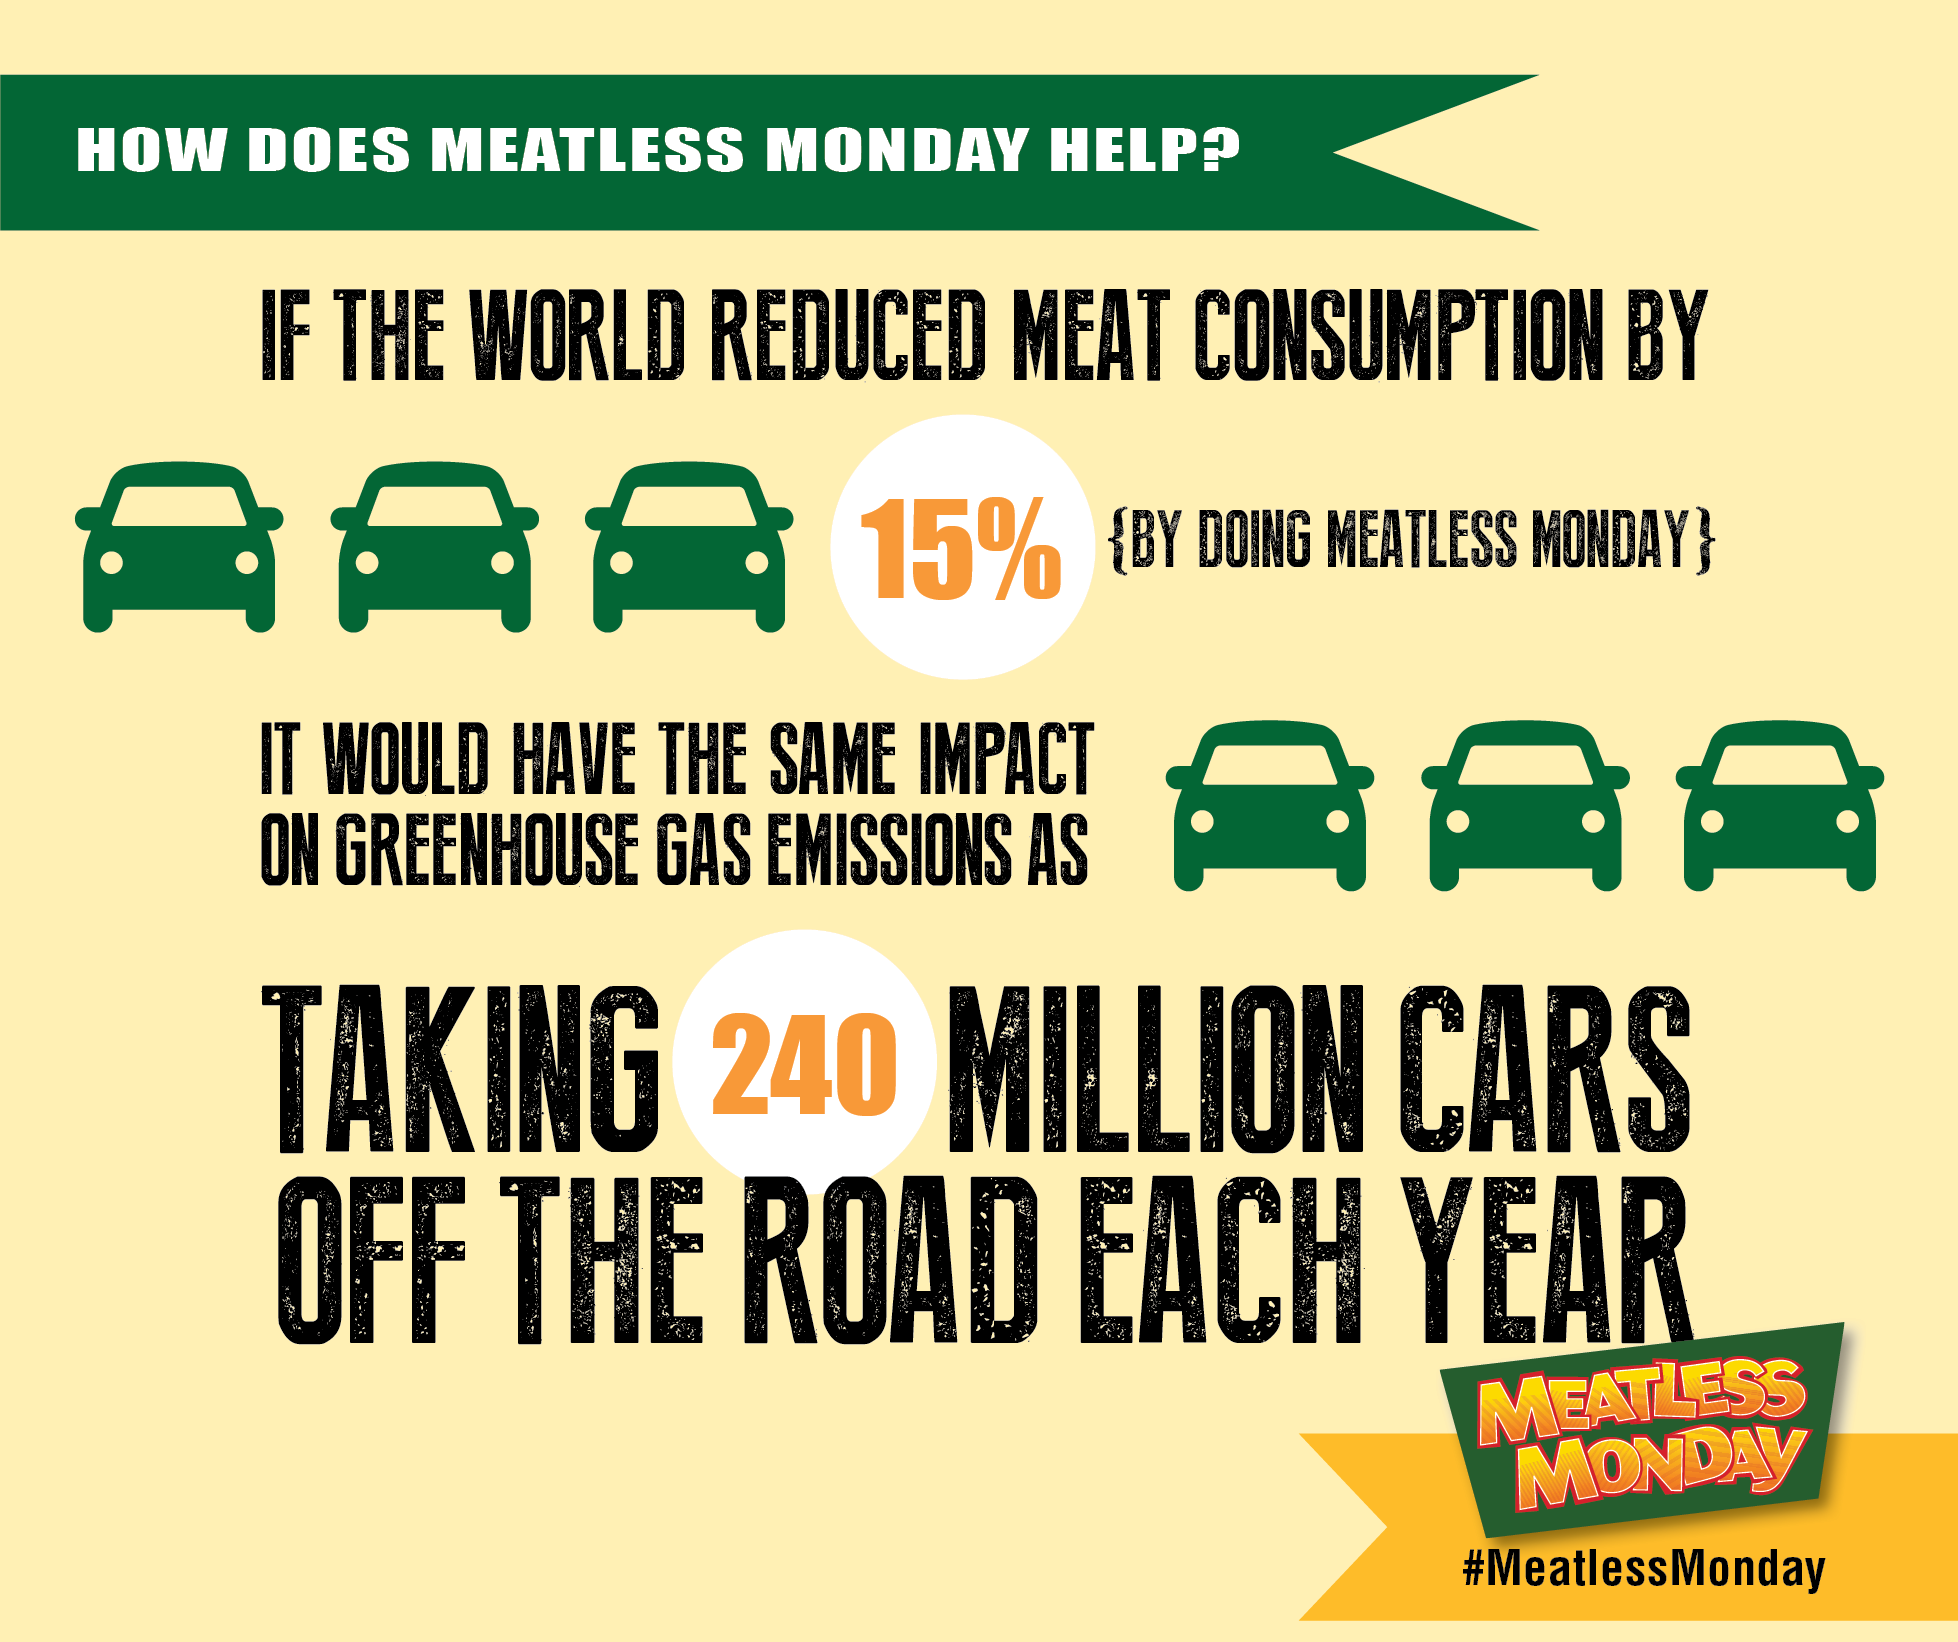 What Do I Cook - Meatless Monday - helping the planet.png